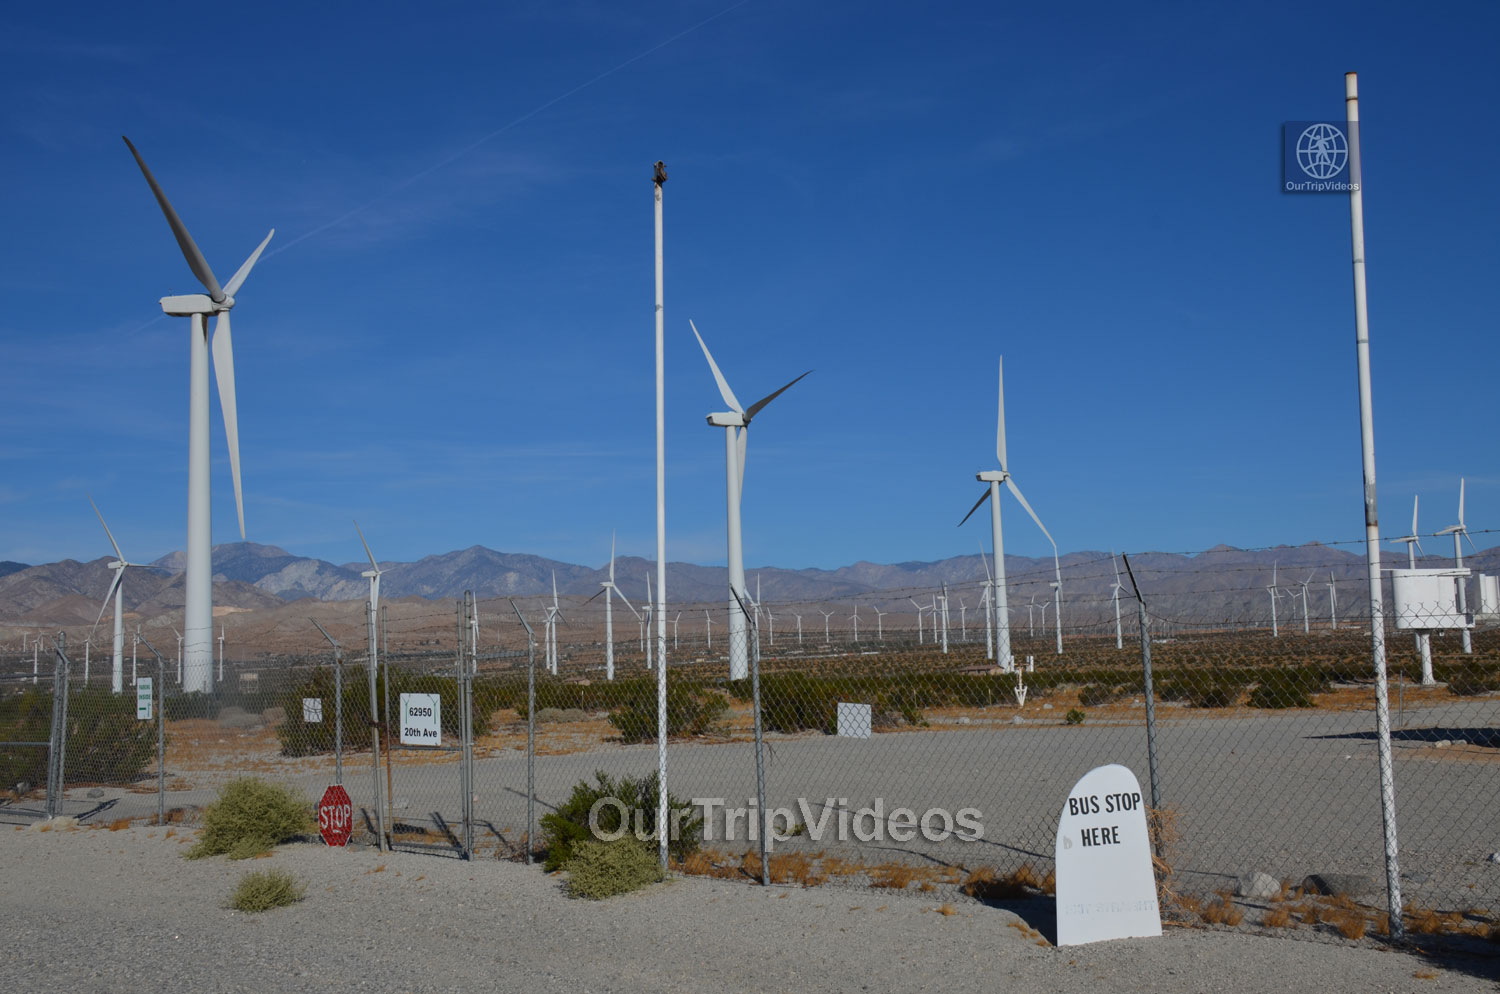 Windmill Tour, Palm Springs, CA, USA - Picture 3 of 25